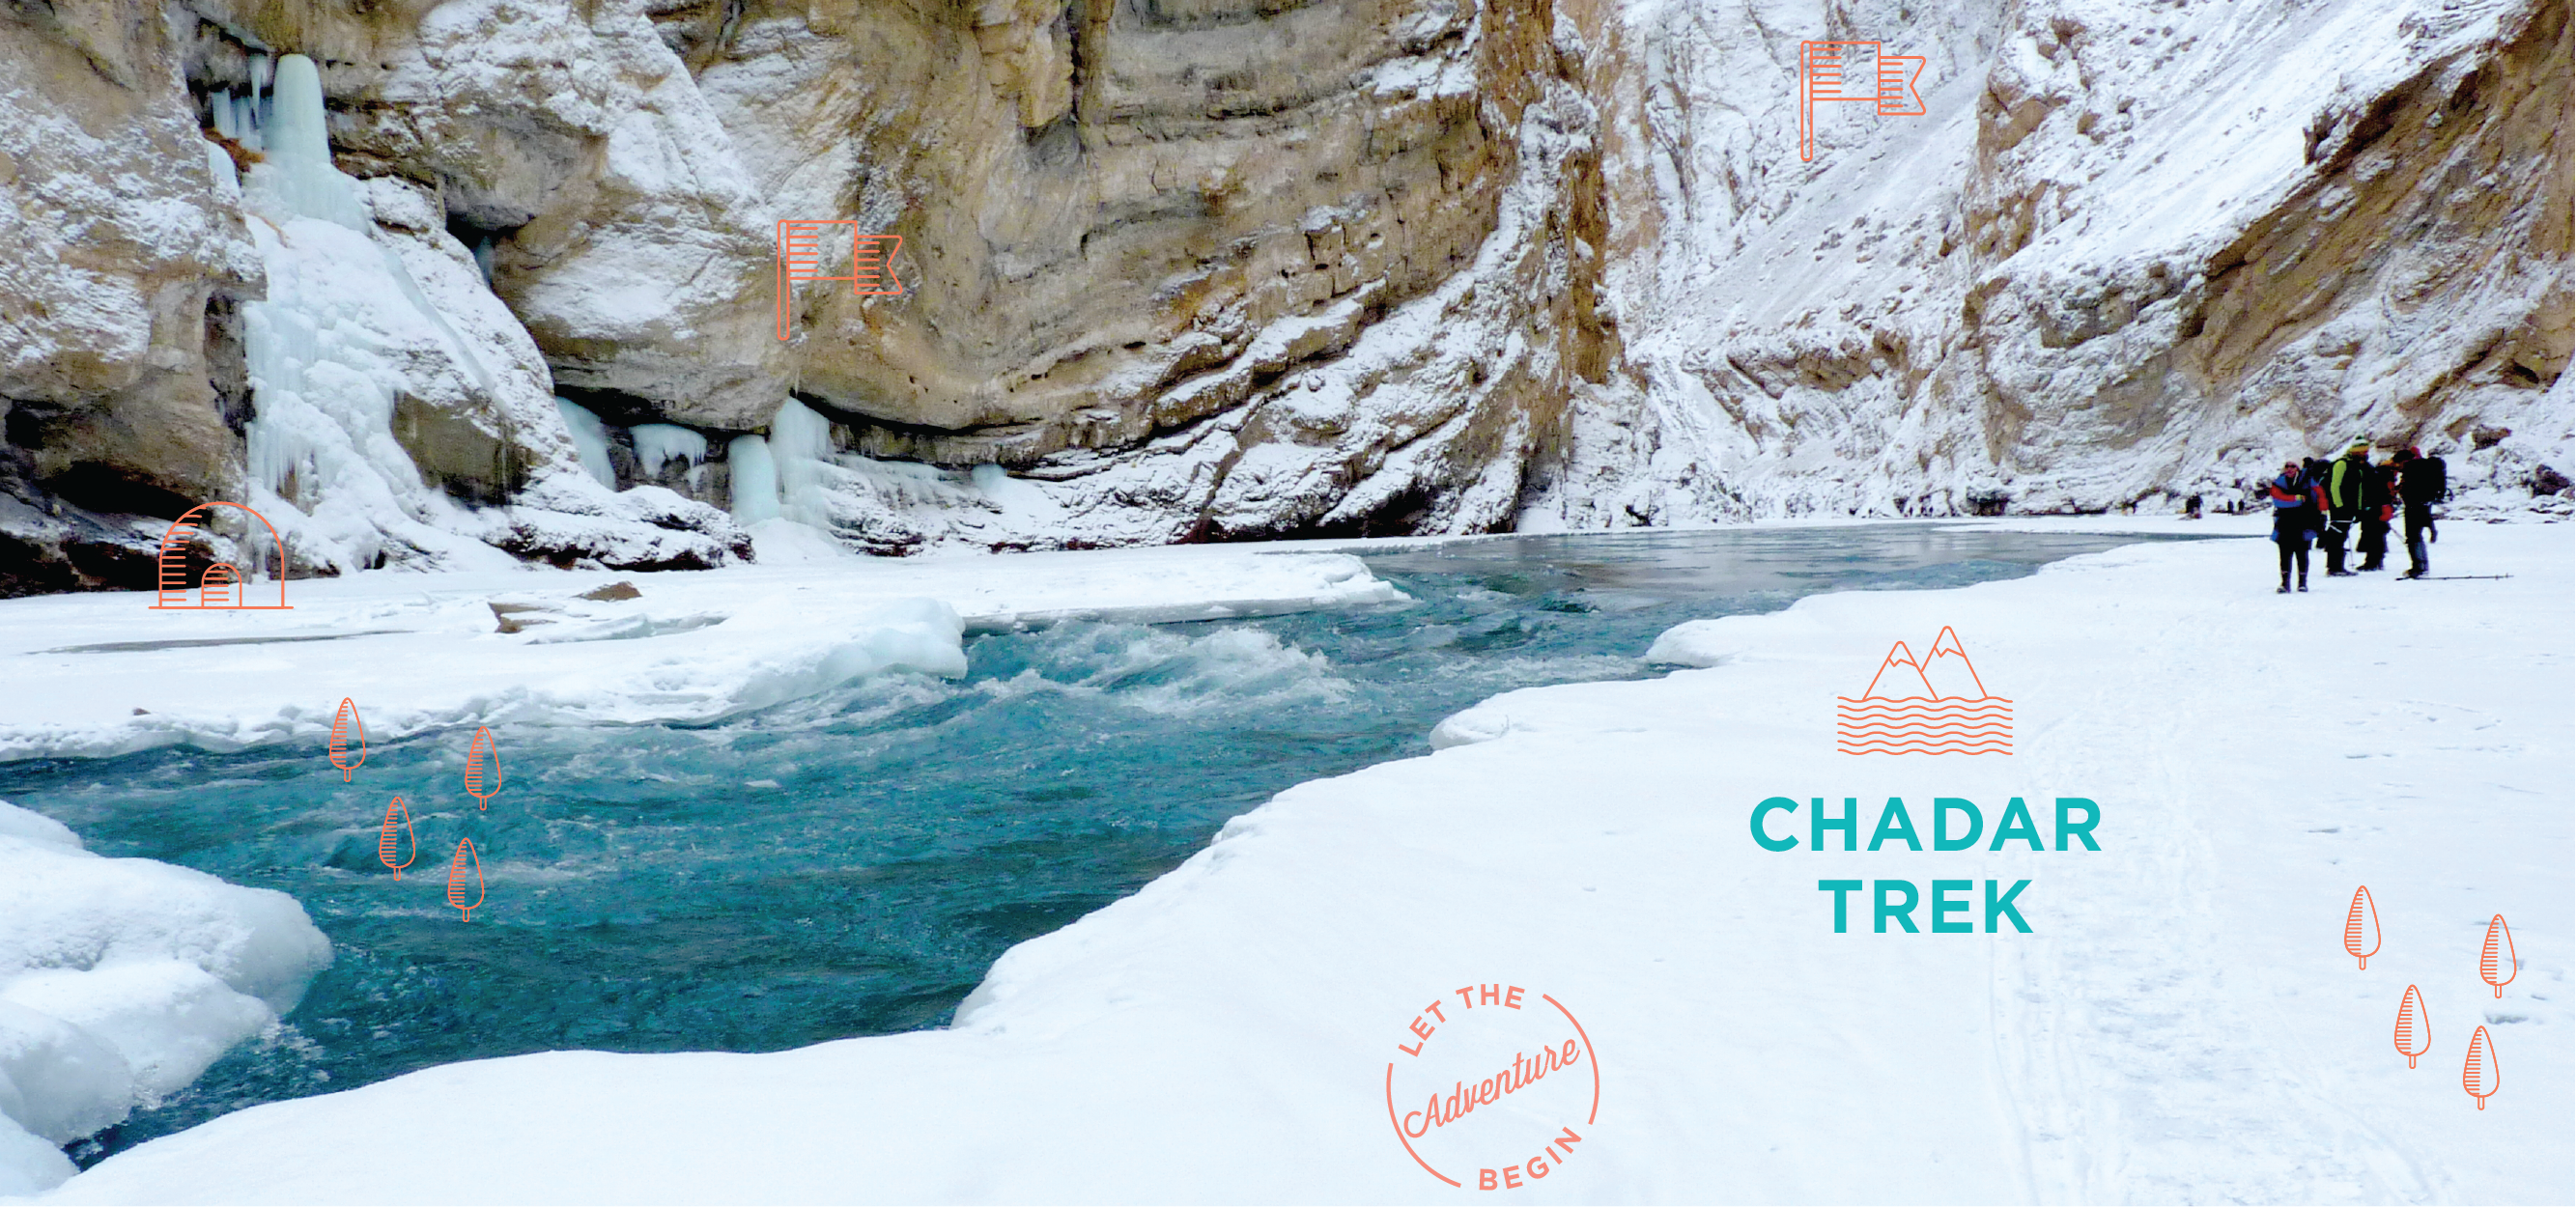 Chadar Trek, The Frozen Zanskar River